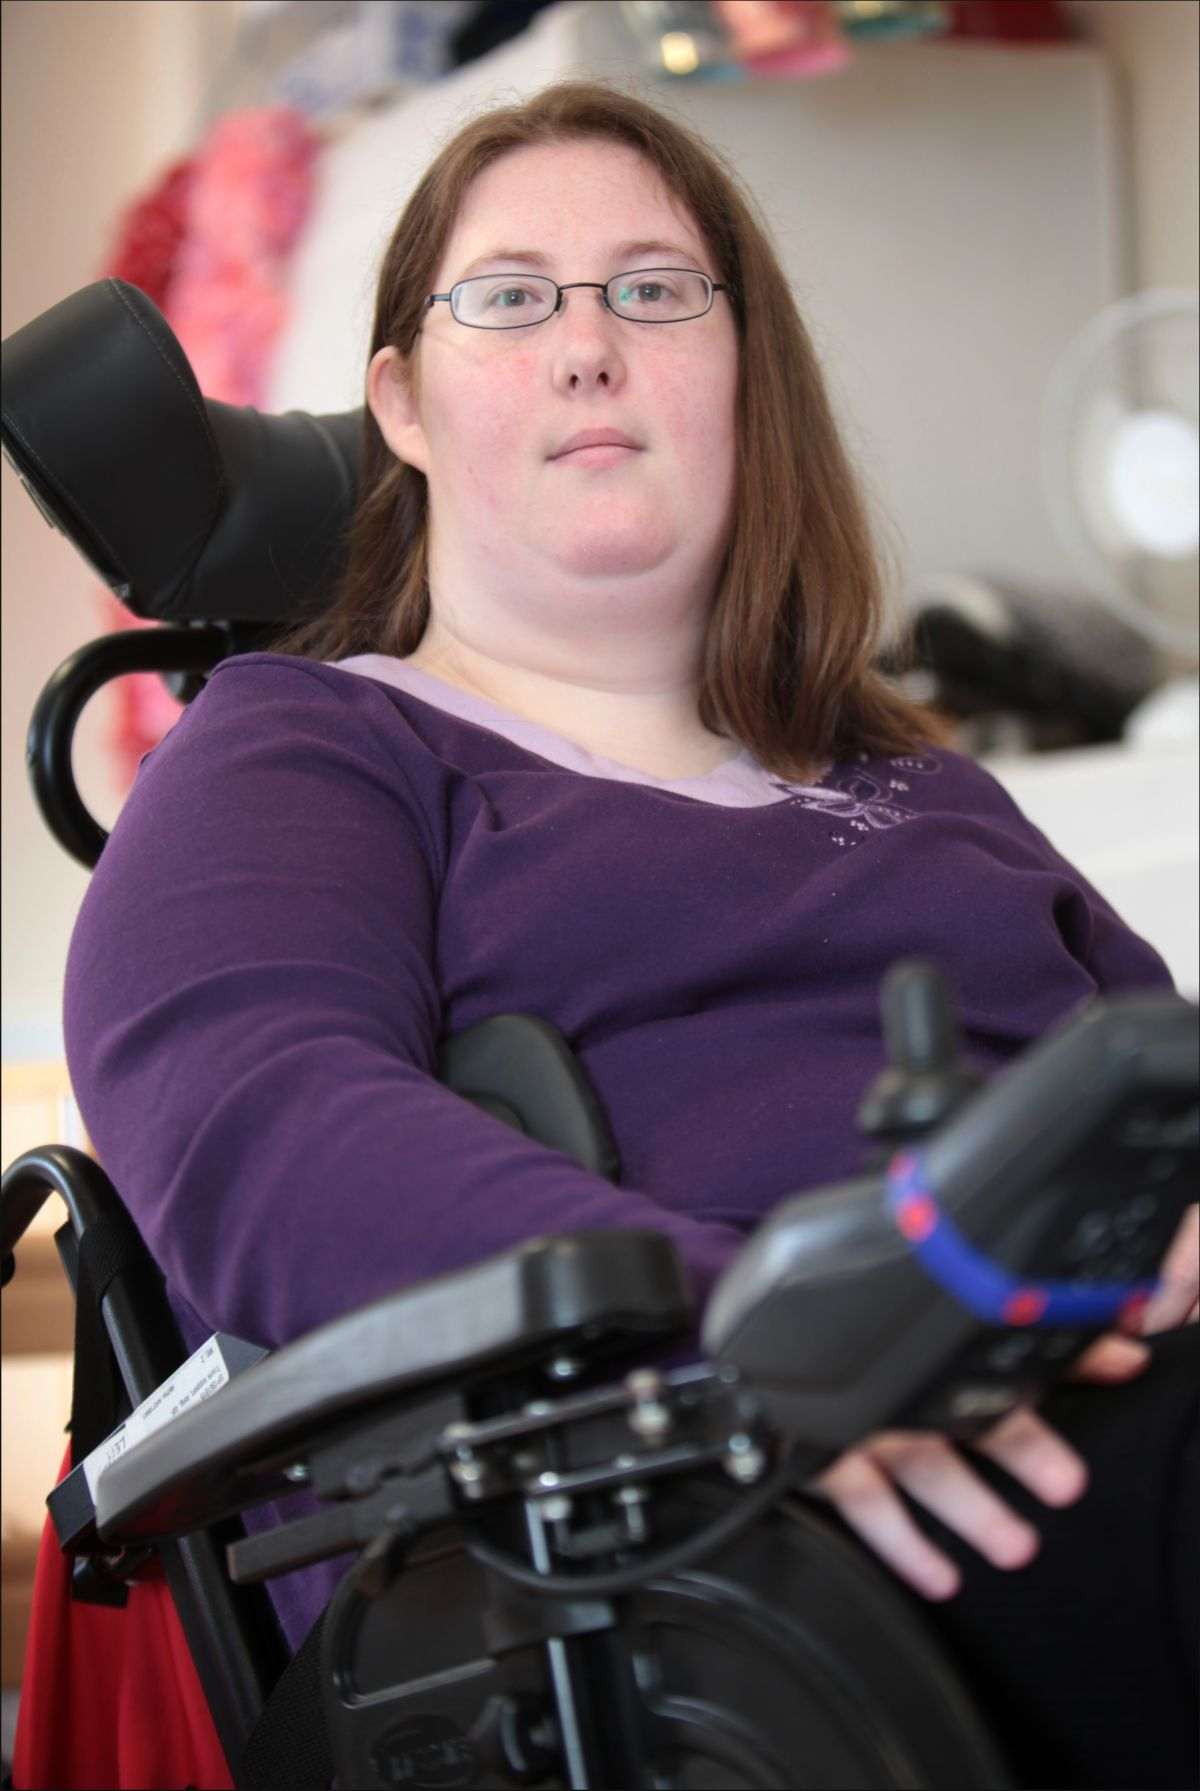 I woke up paralysed - and doctors can't find a physical reason for it